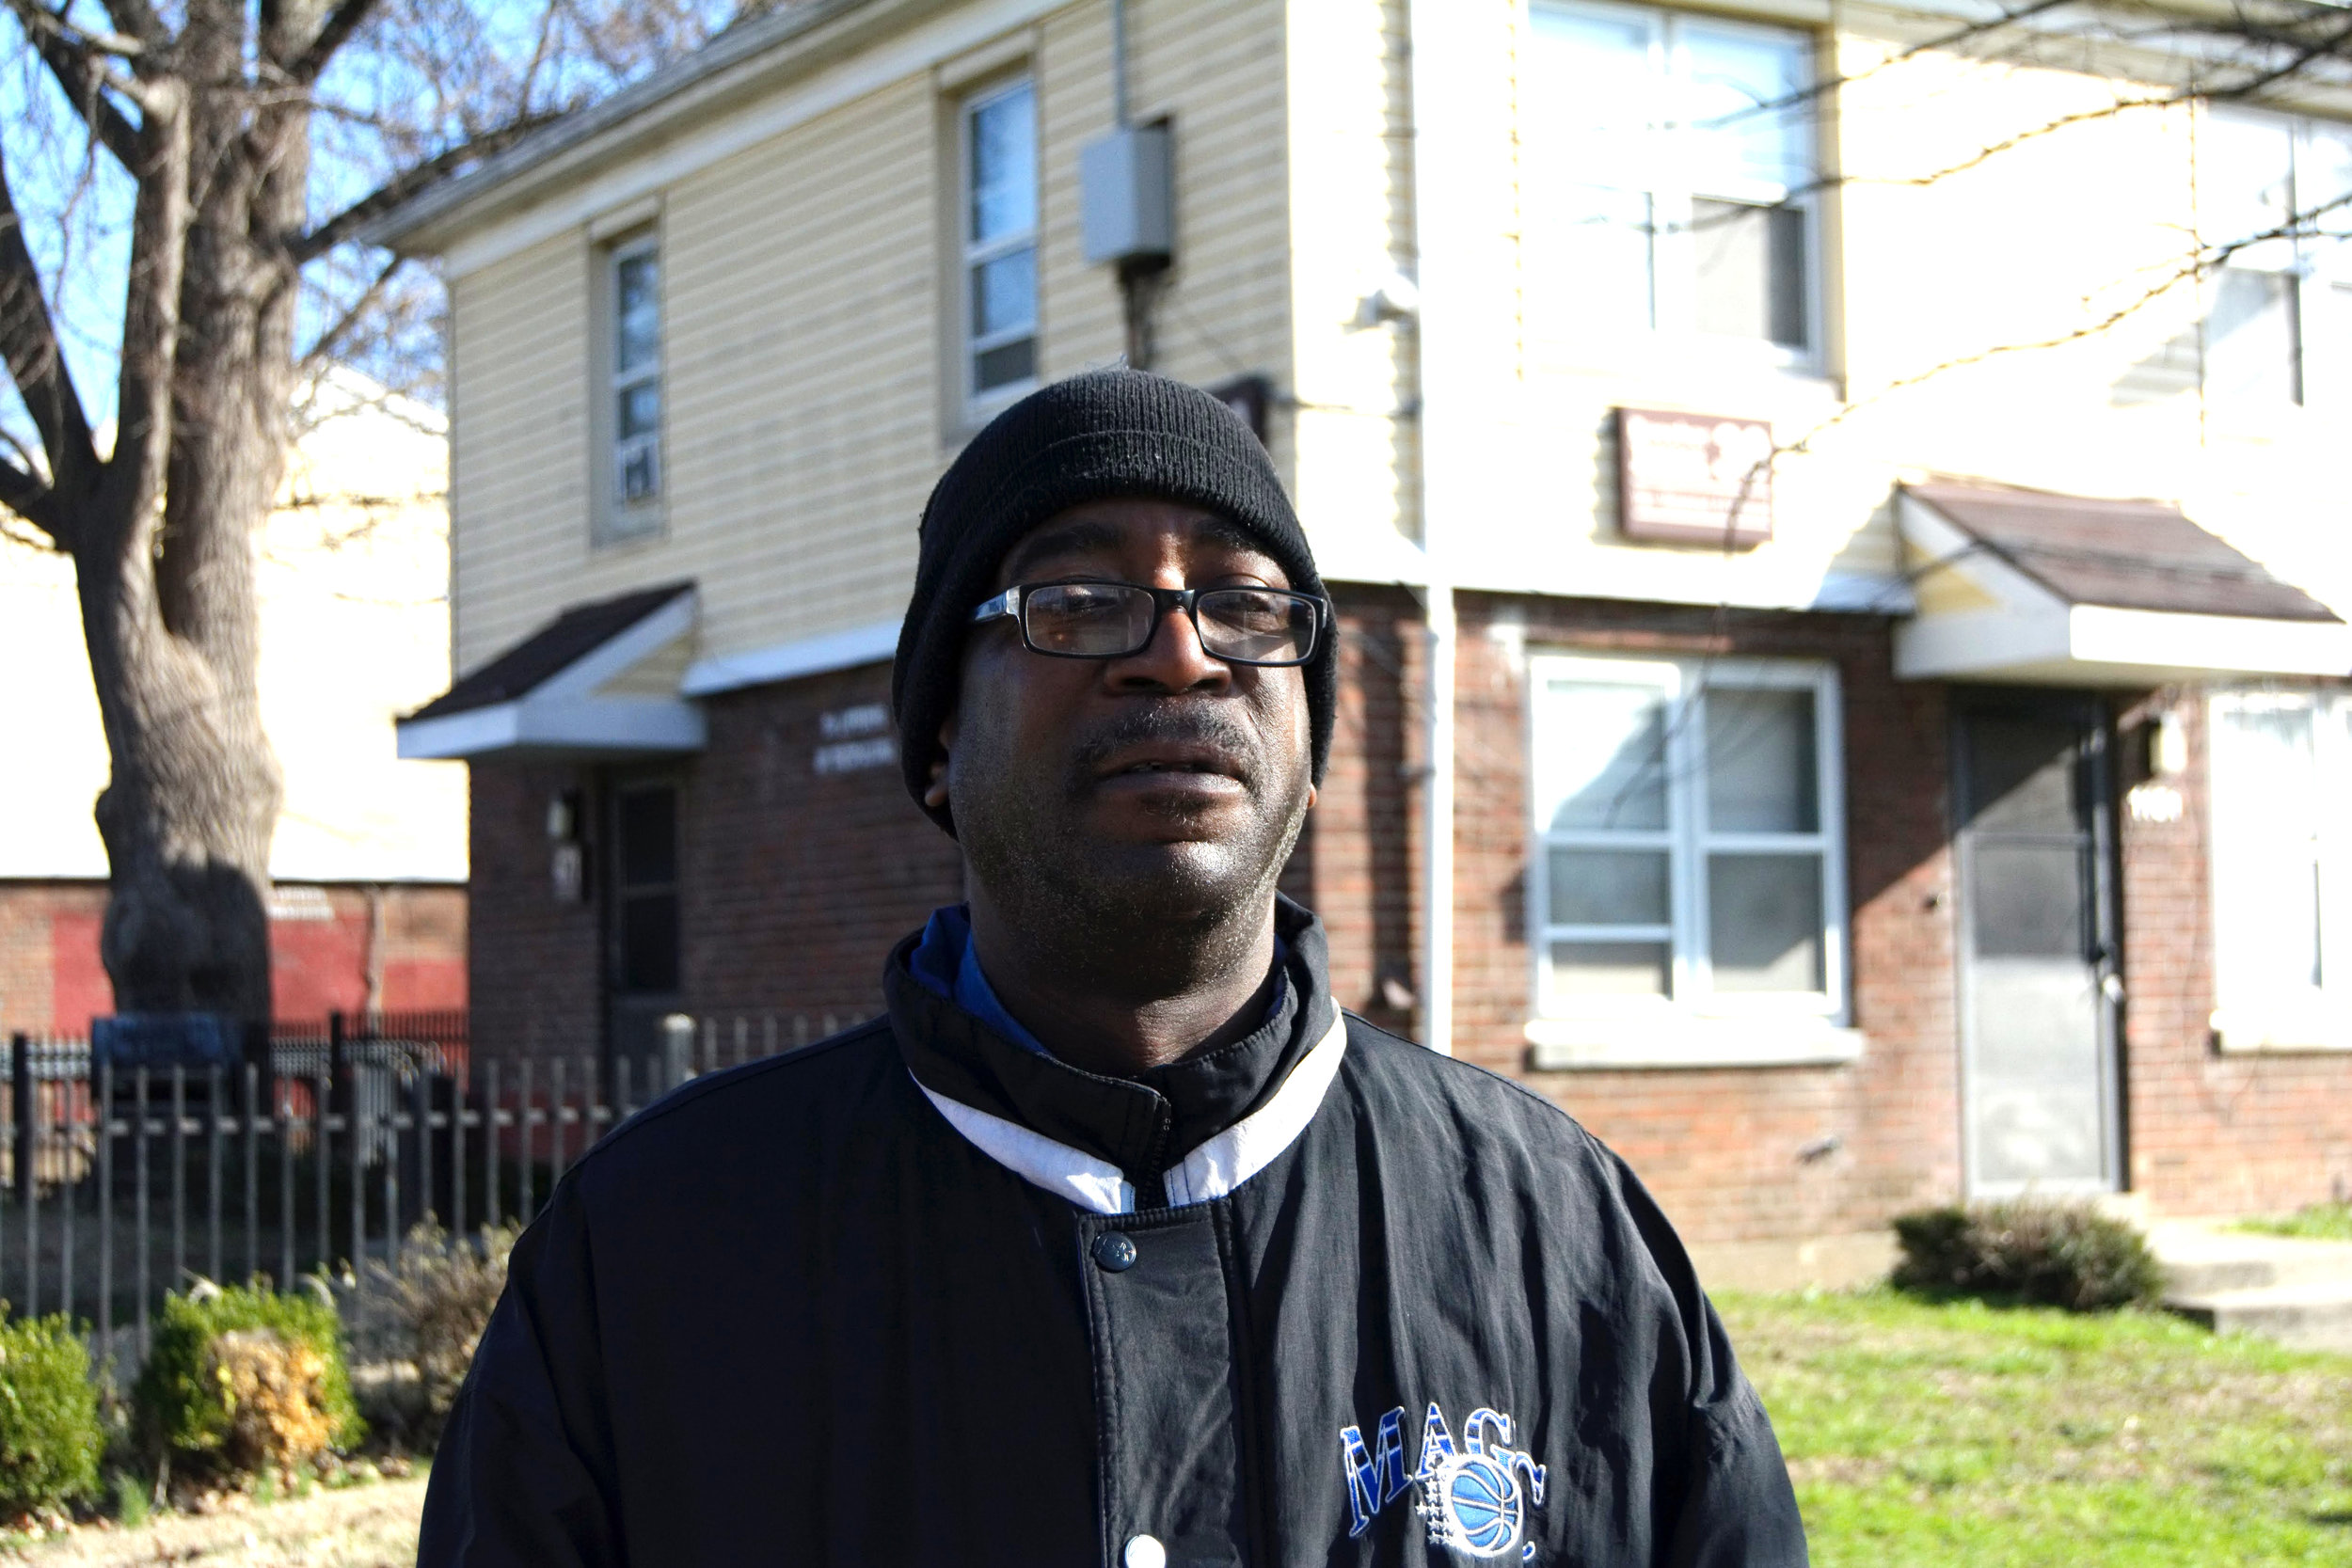 """I grew up around here, across the street. I grew up in that building, right there. If they tear it down, they ain't doing nothing but moving a different group in and then they'll move a different group throughout the rest of the West End. It's a good thing for the city but is it a good thing for us people?  I'm gonna miss it. I grew up down here. Everybody's gone. Everybody I've been knowing for forty something years was over here. I'm gonna miss hooking up with all the people. Everybody would get together on July 4th and Thunder over Louisville and hang out at the park. It'll be people that you haven't seen in years but everybody from Beecher Terrace and Village West would get down here and hook up. I'm gonna miss all of those days."" - Dro, Russell"